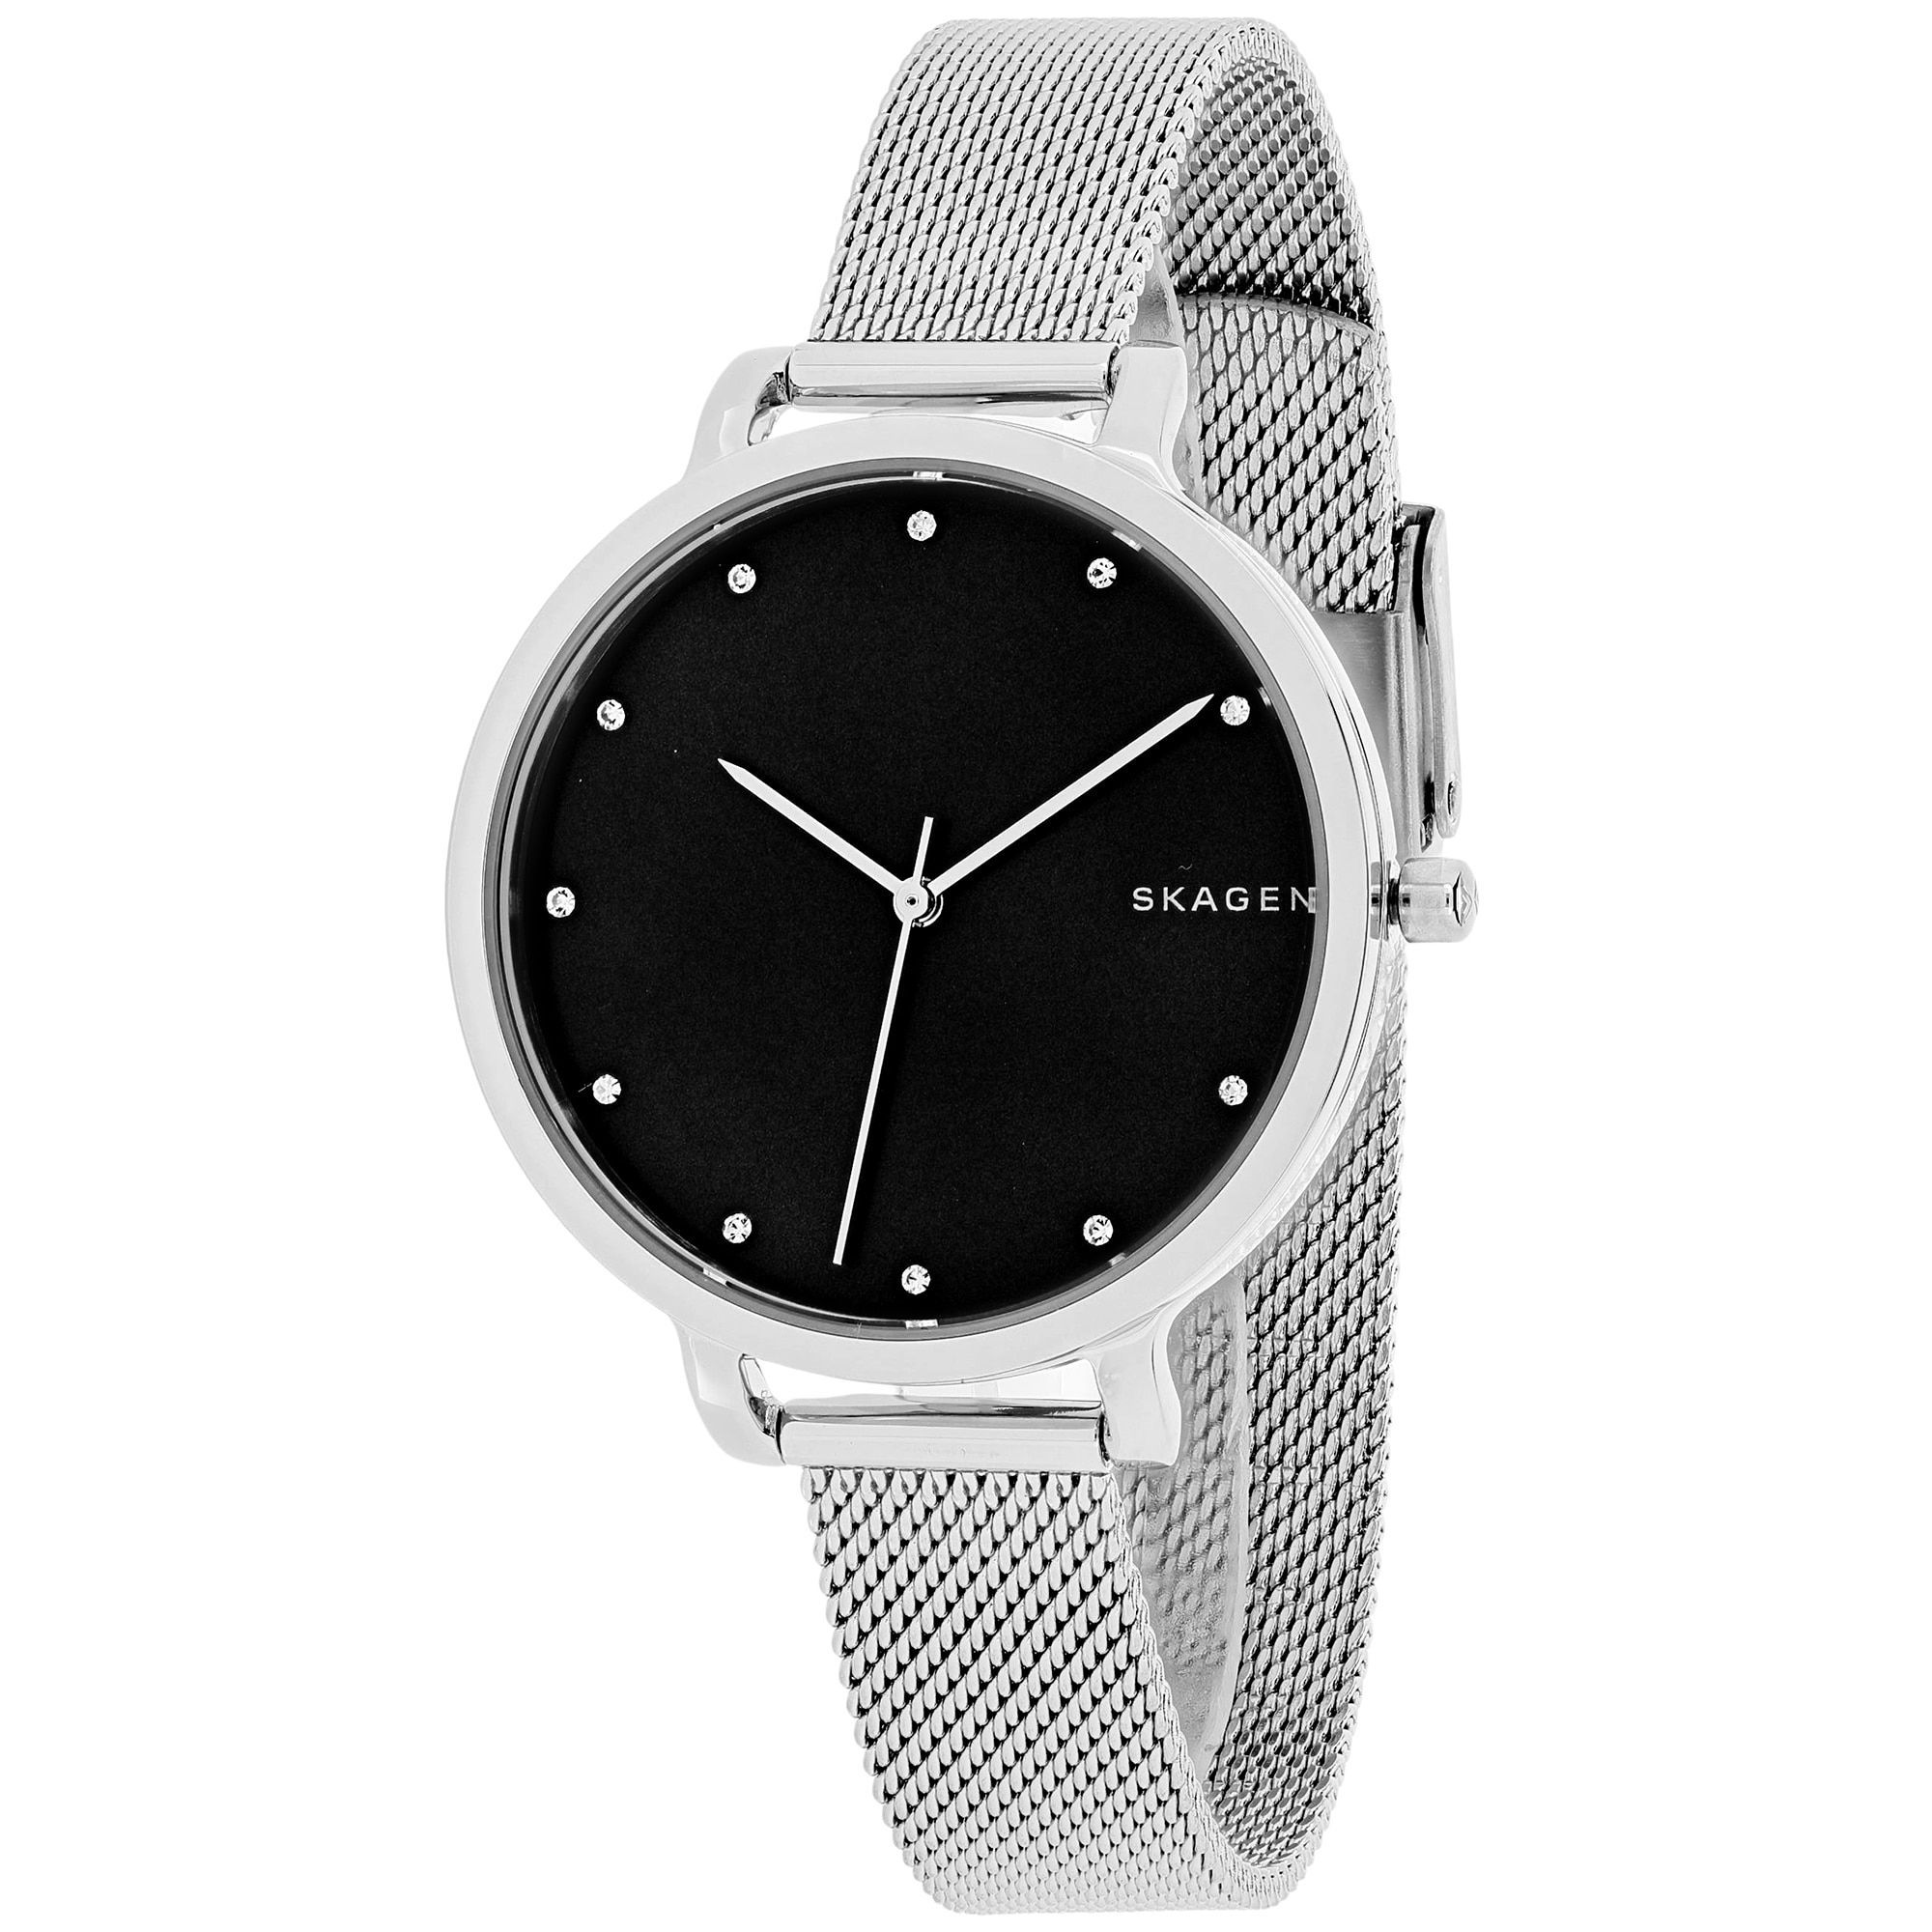 white double jomashop ladies com net watch getimage url black leather s hagen dial skagen wrap watches shld